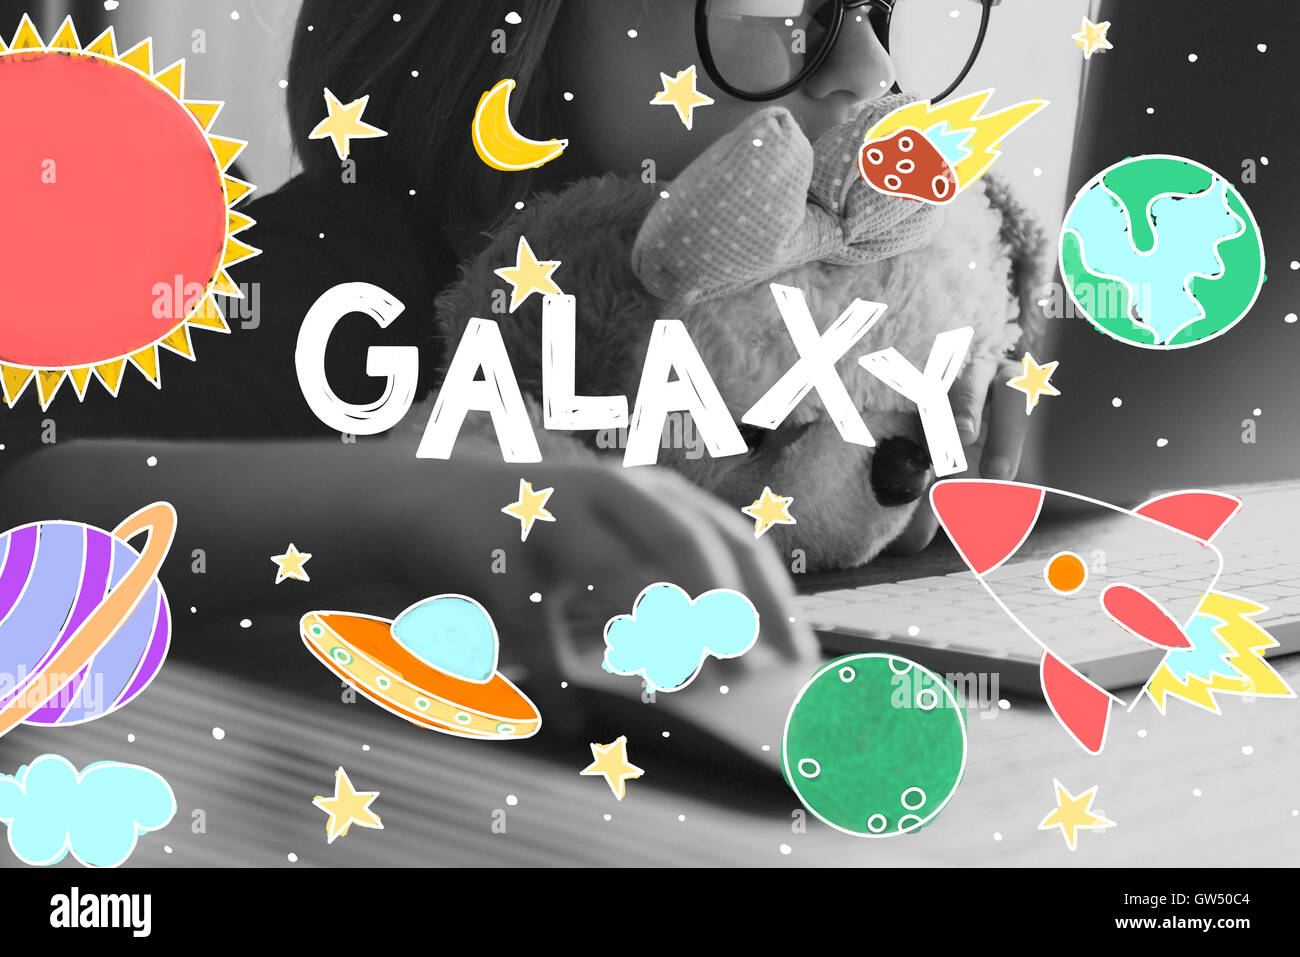 Outer Space Icons Drawing Graphics Concept - Stock Image